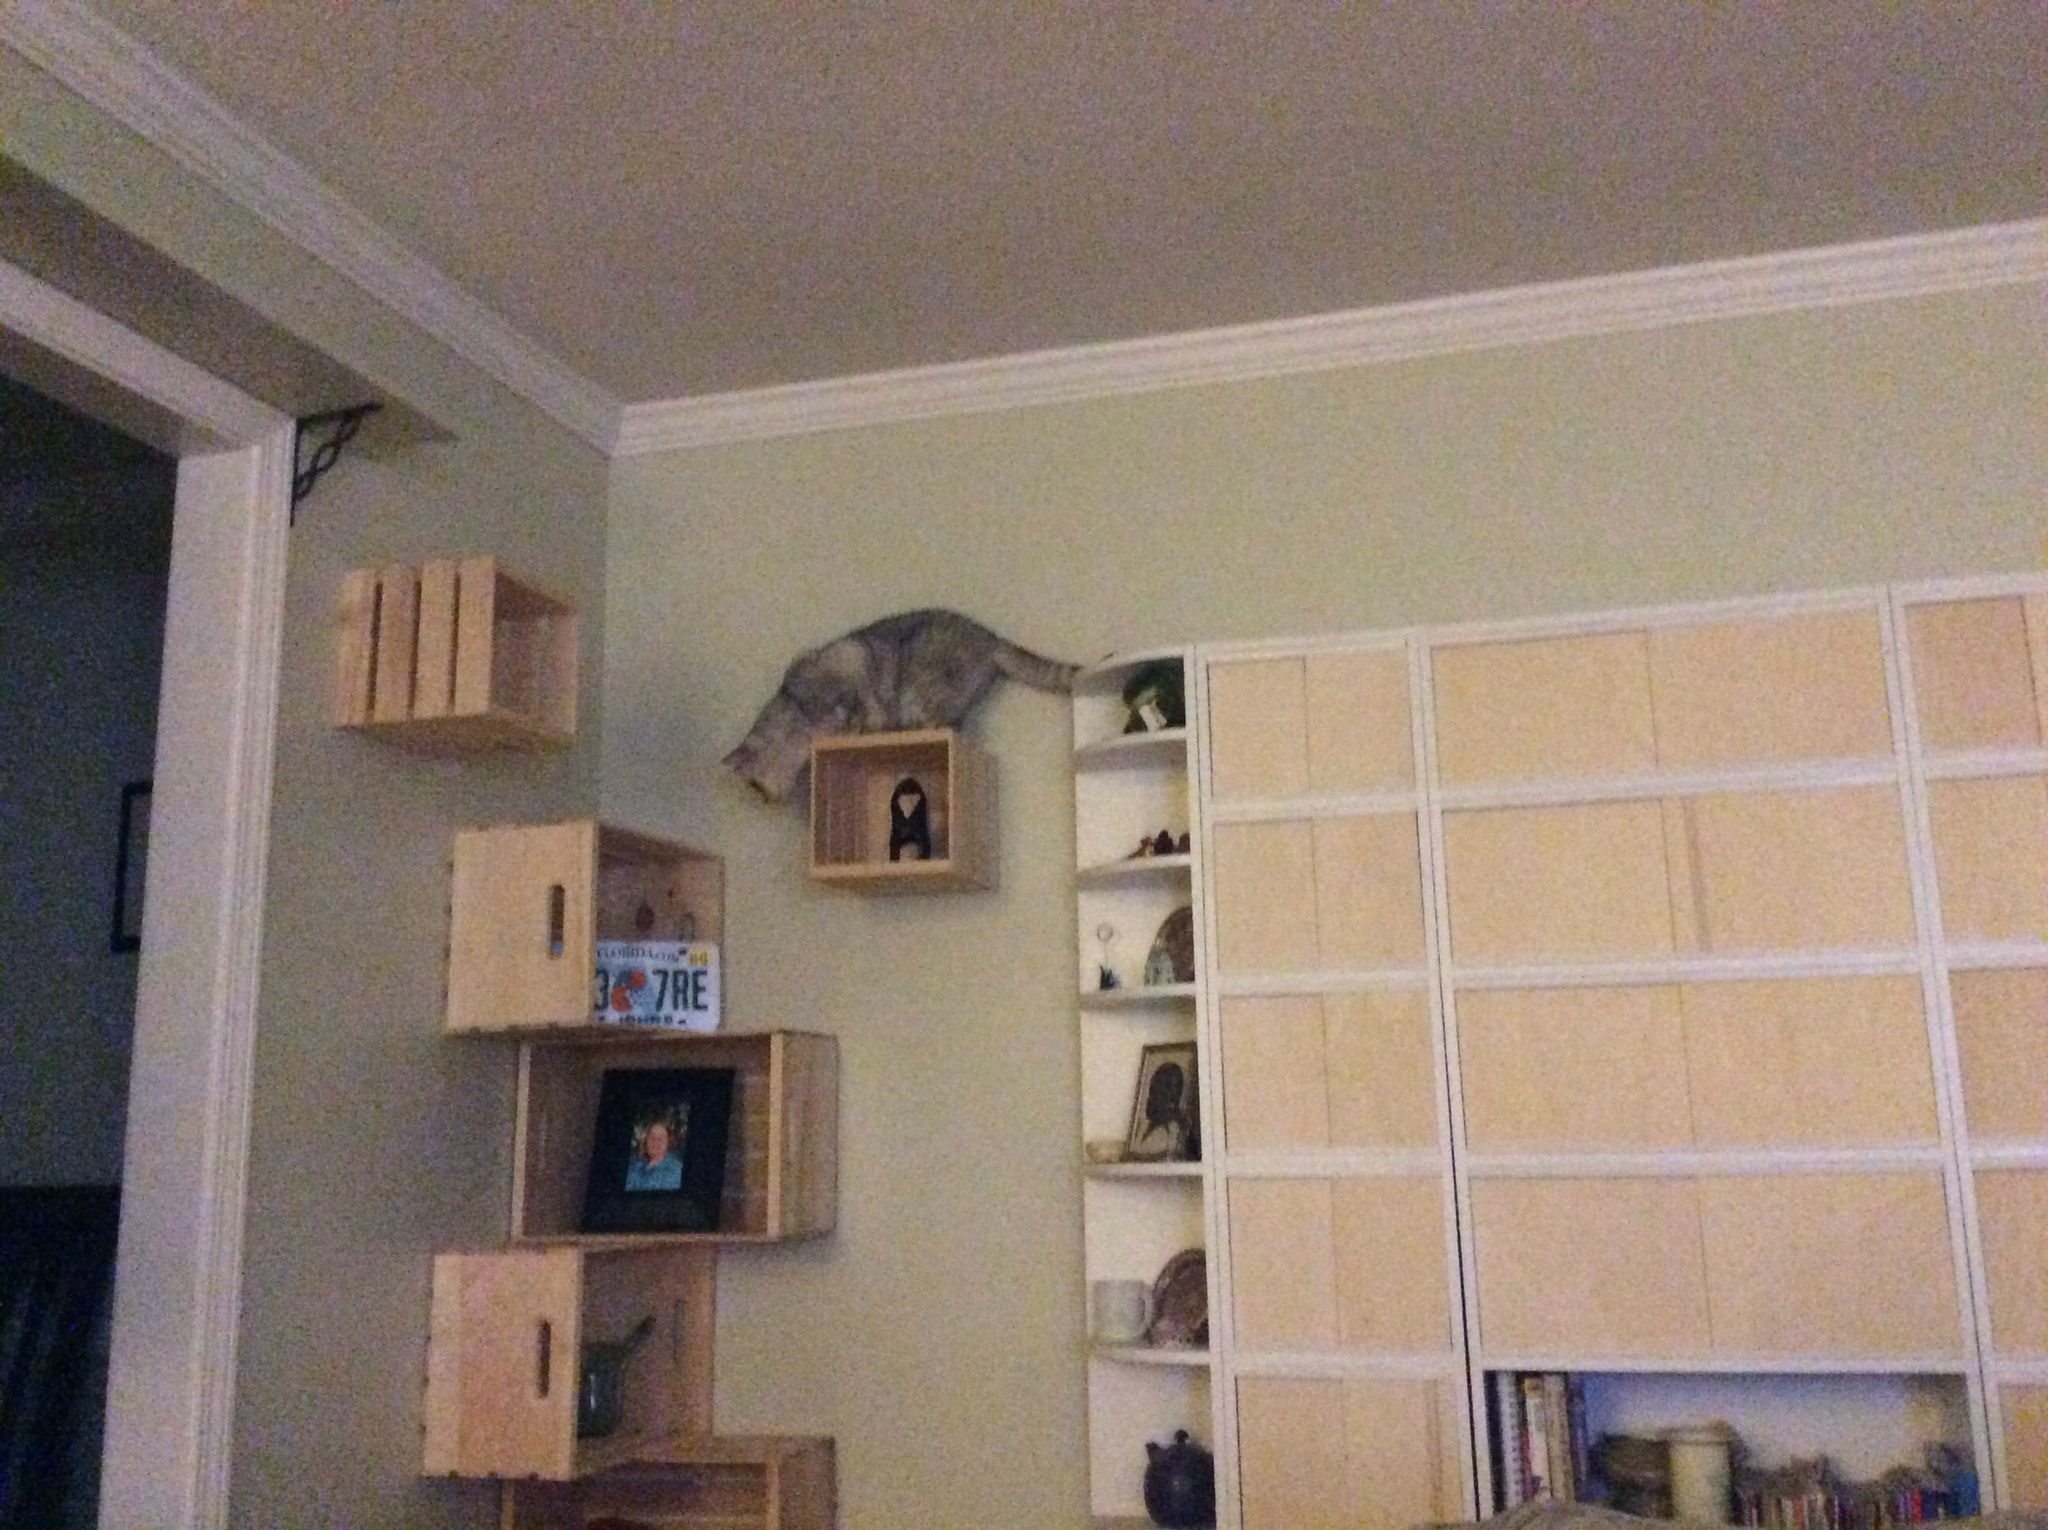 diy cat shelves using crates from home depot large washers screws rh pinterest com